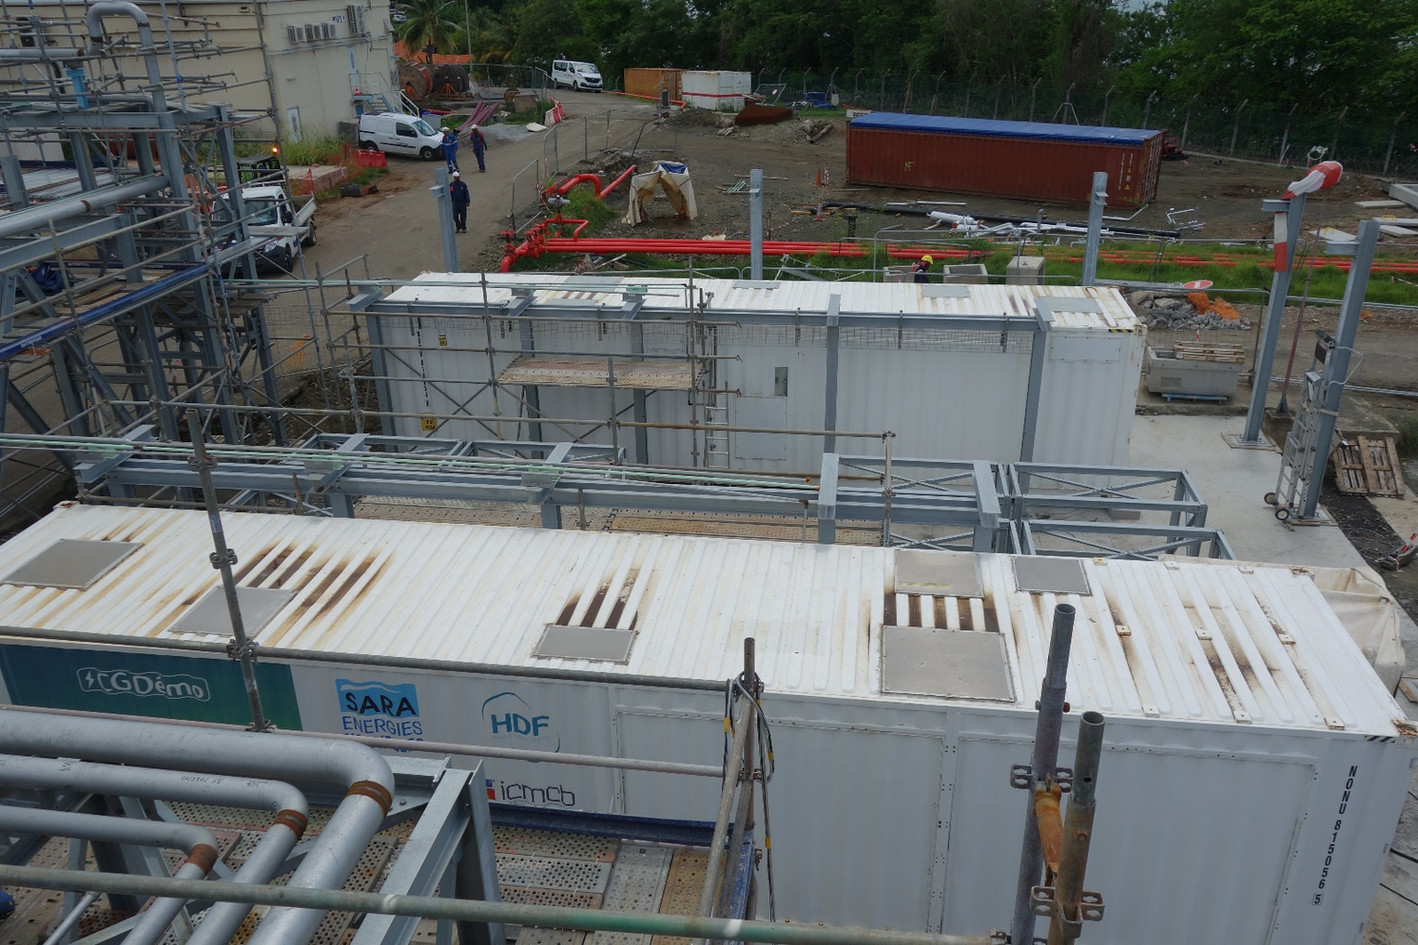 Implementation of the fuel cell